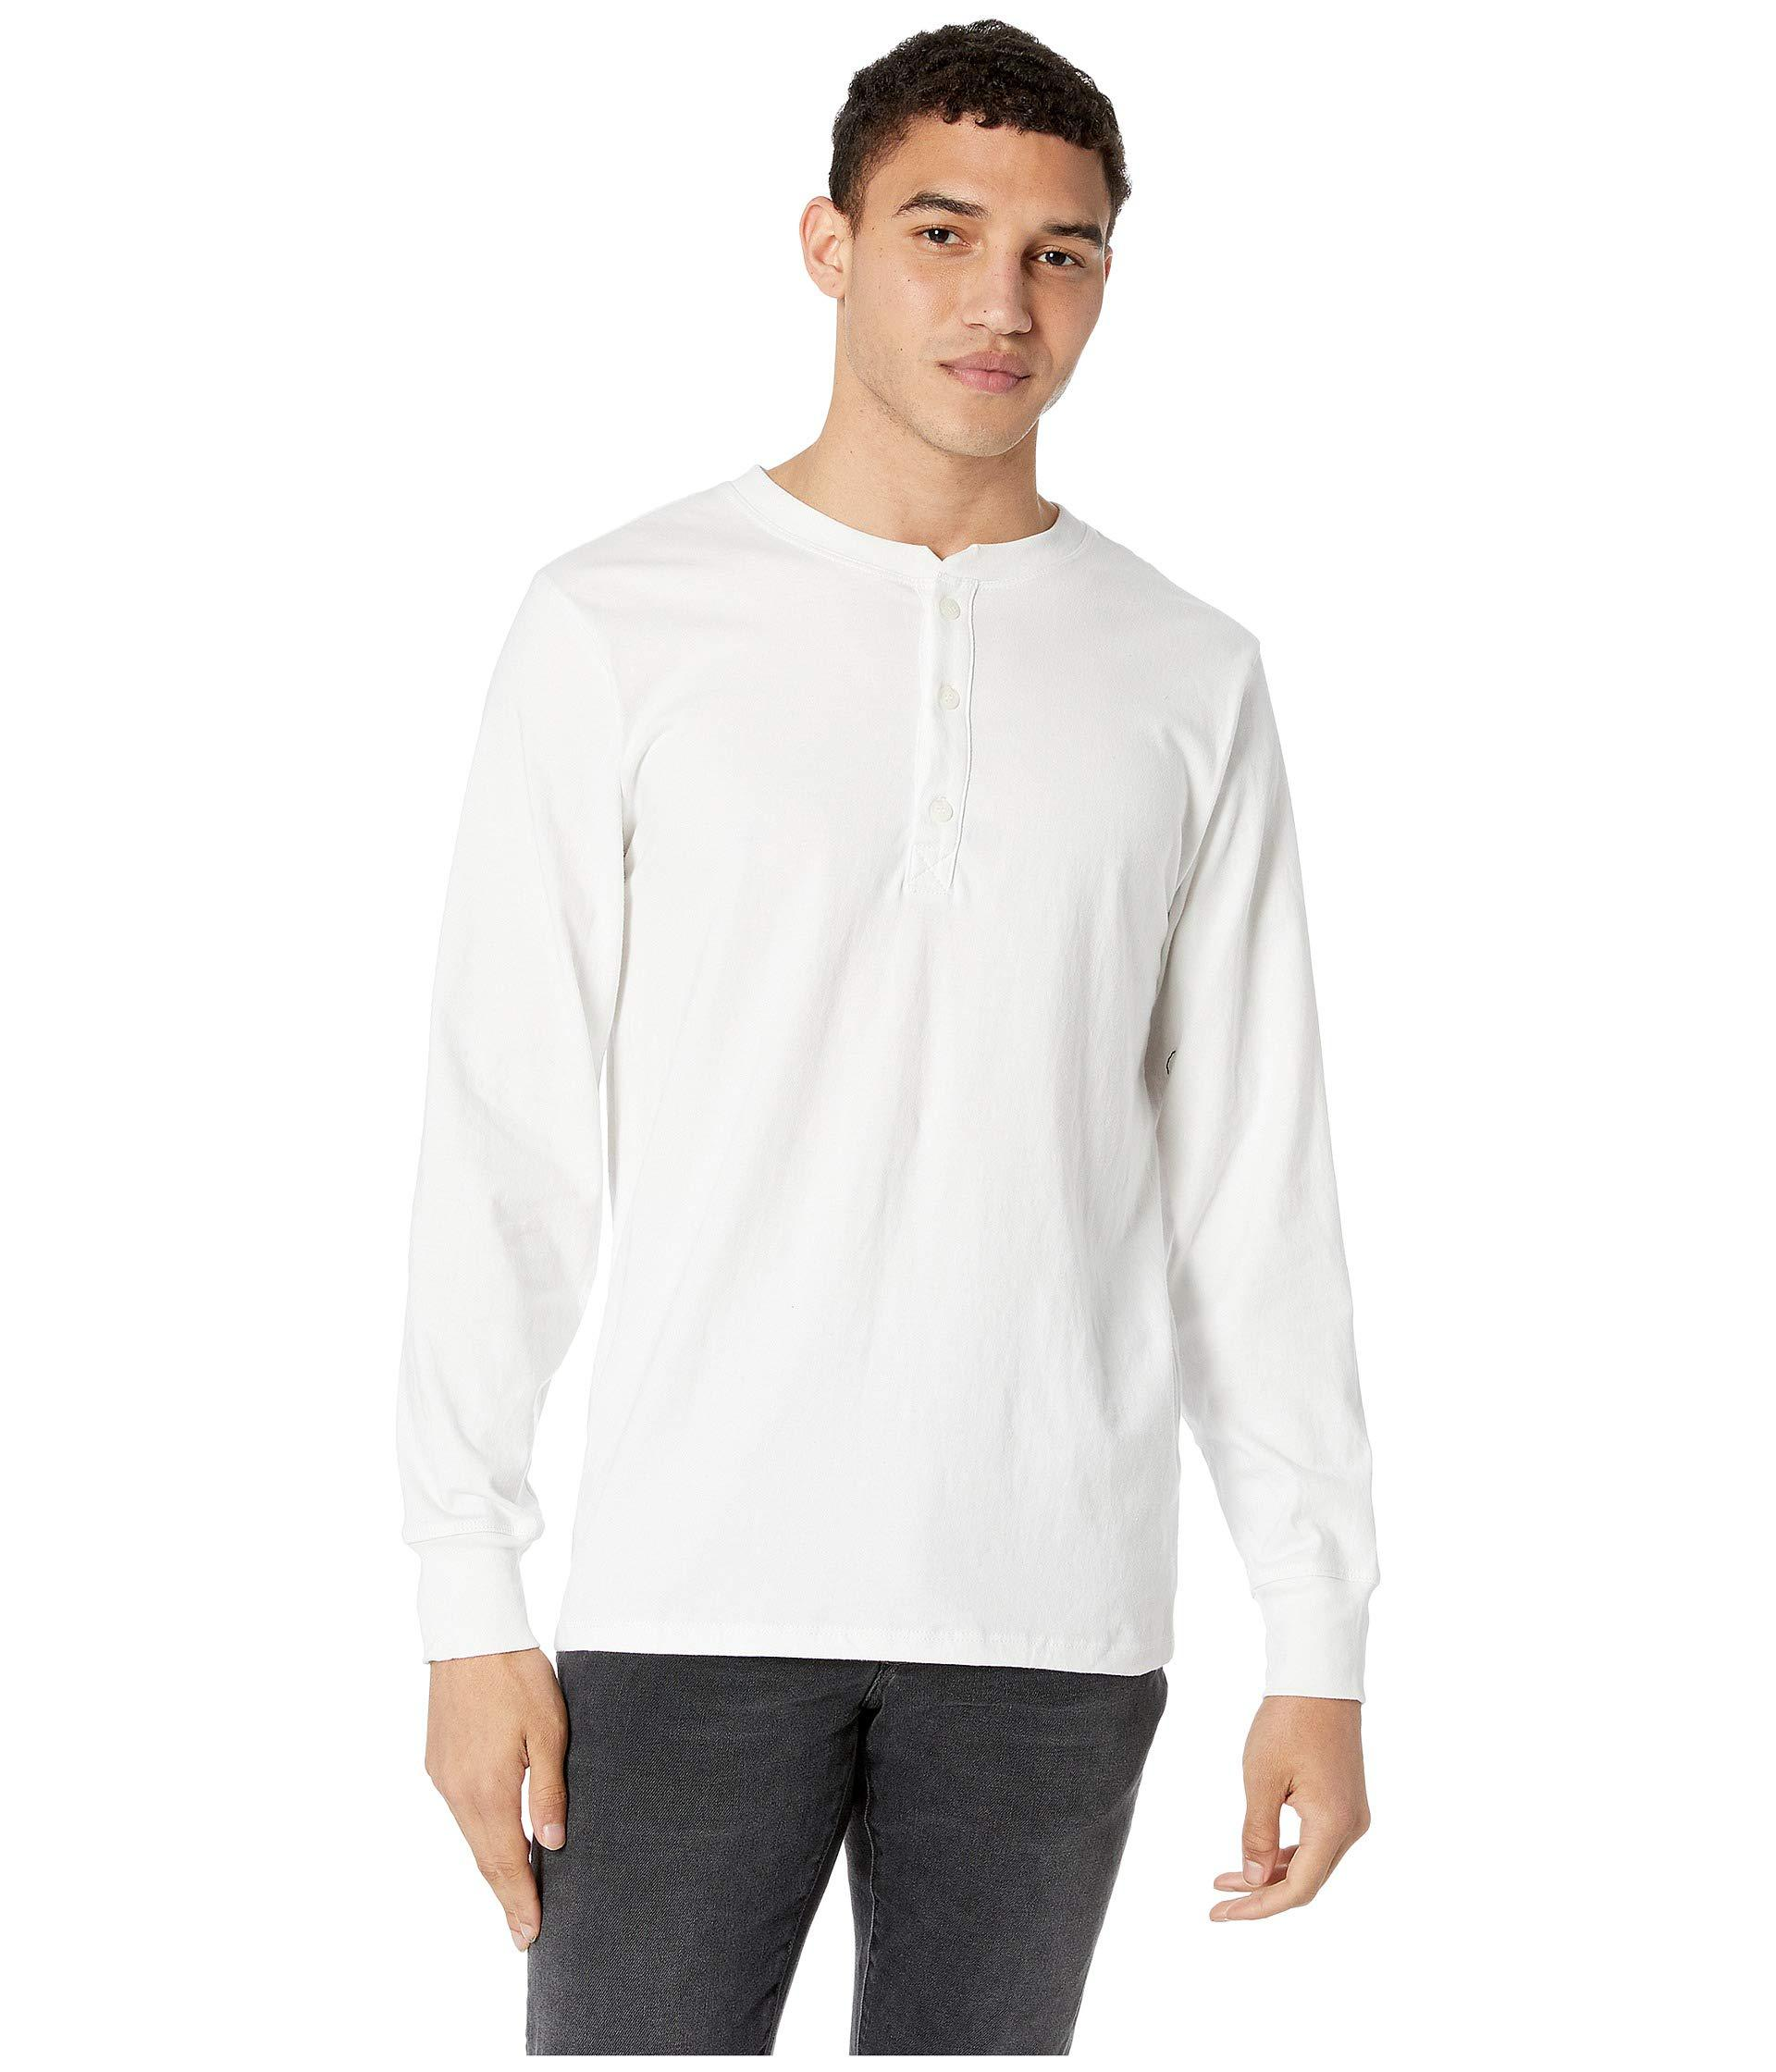 Lyst - Richer Poorer Long Sleeve Henley (white) Men s T Shirt in ... 3888305b8bc